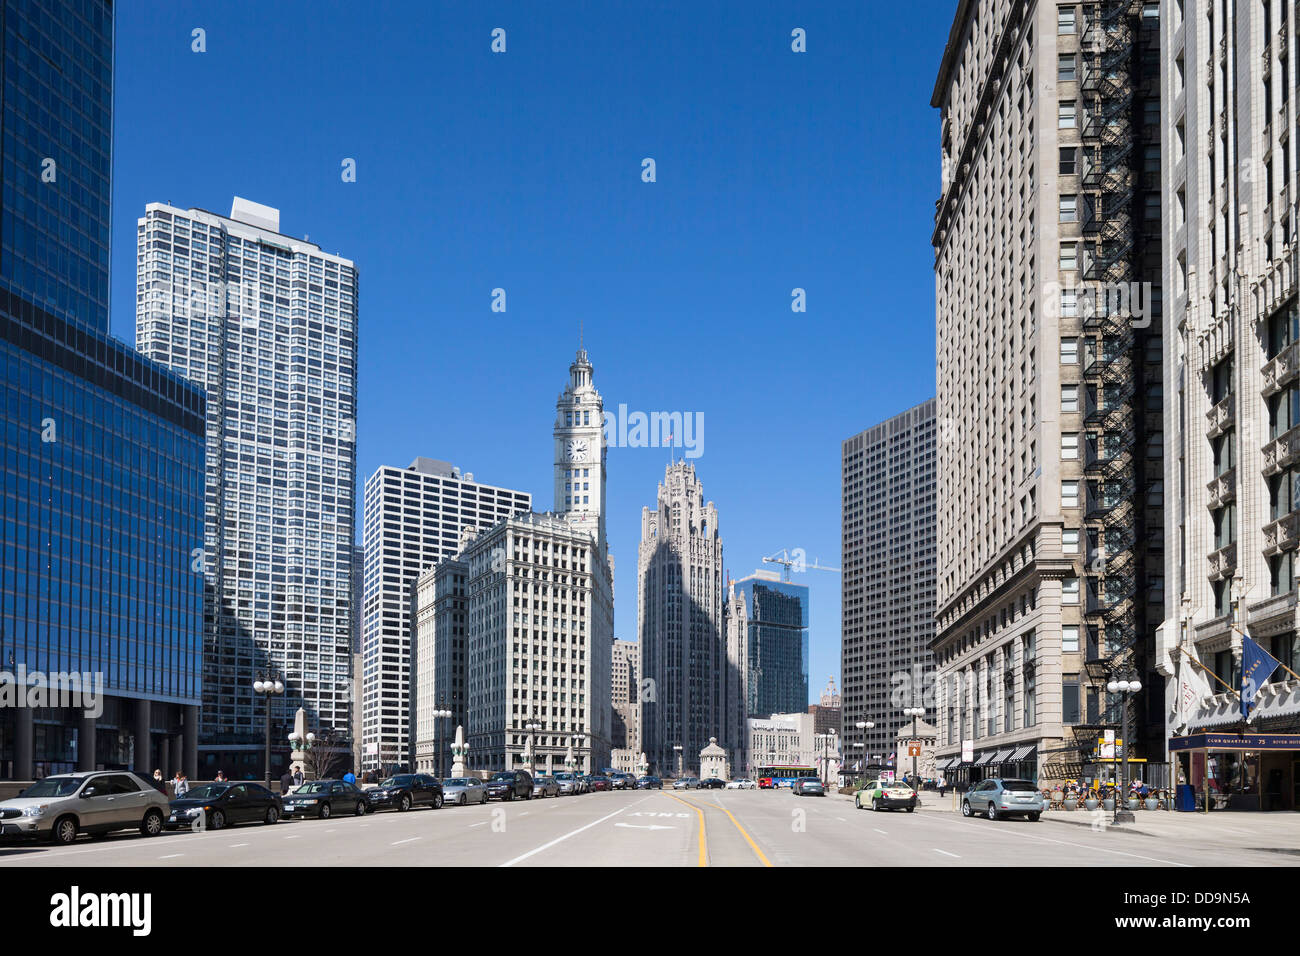 United States, Illinois, Chicago, View of Wrigley Building and Tribune Tower - Stock Image